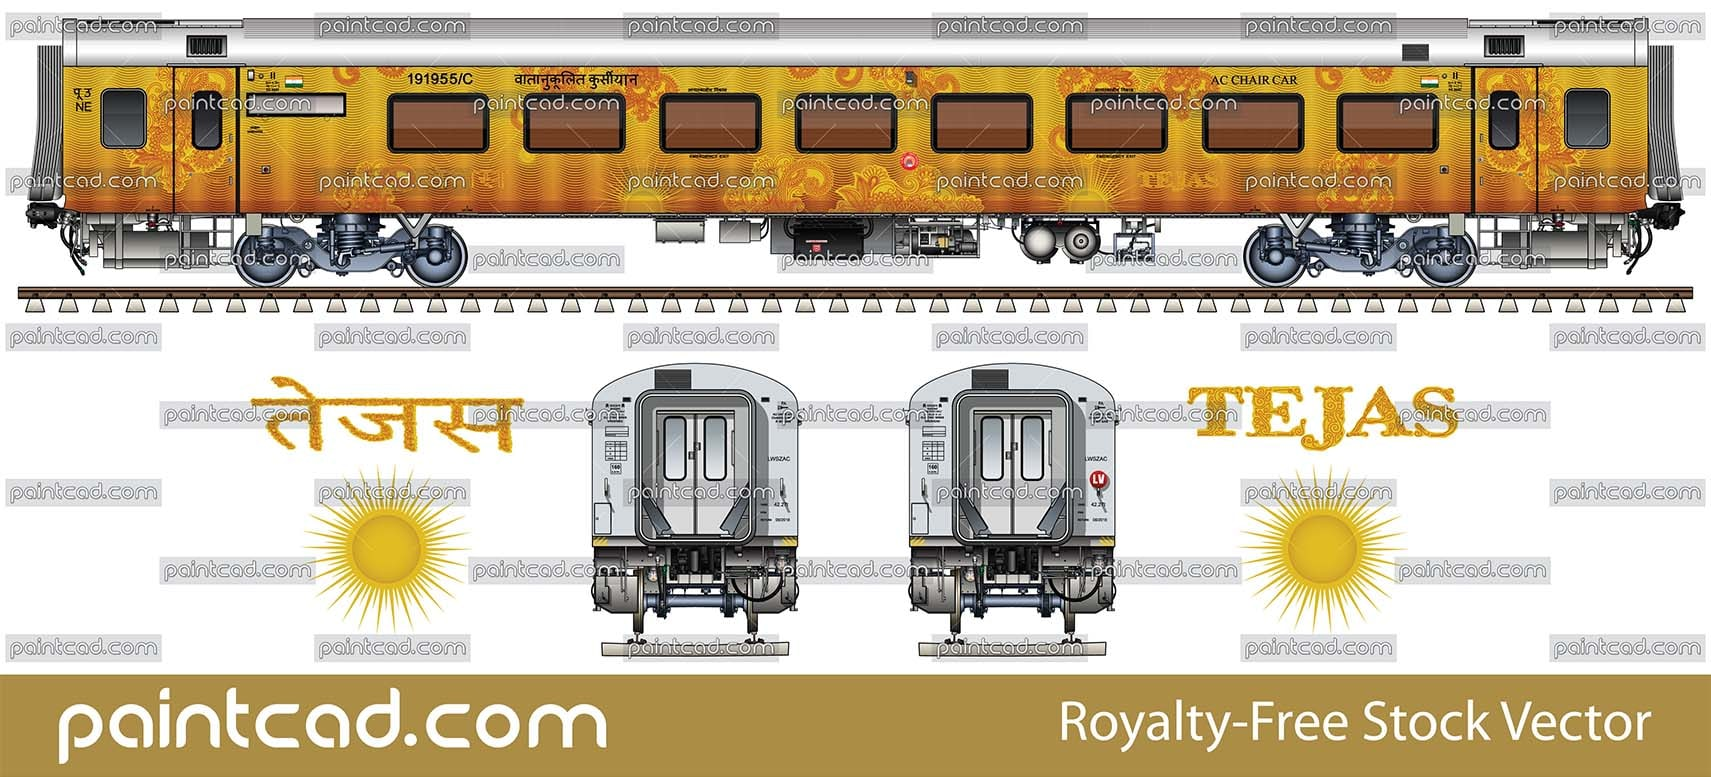 Luxury AC CHAIR CAR with 78 seats in livery of Tejas Express - vector illustration